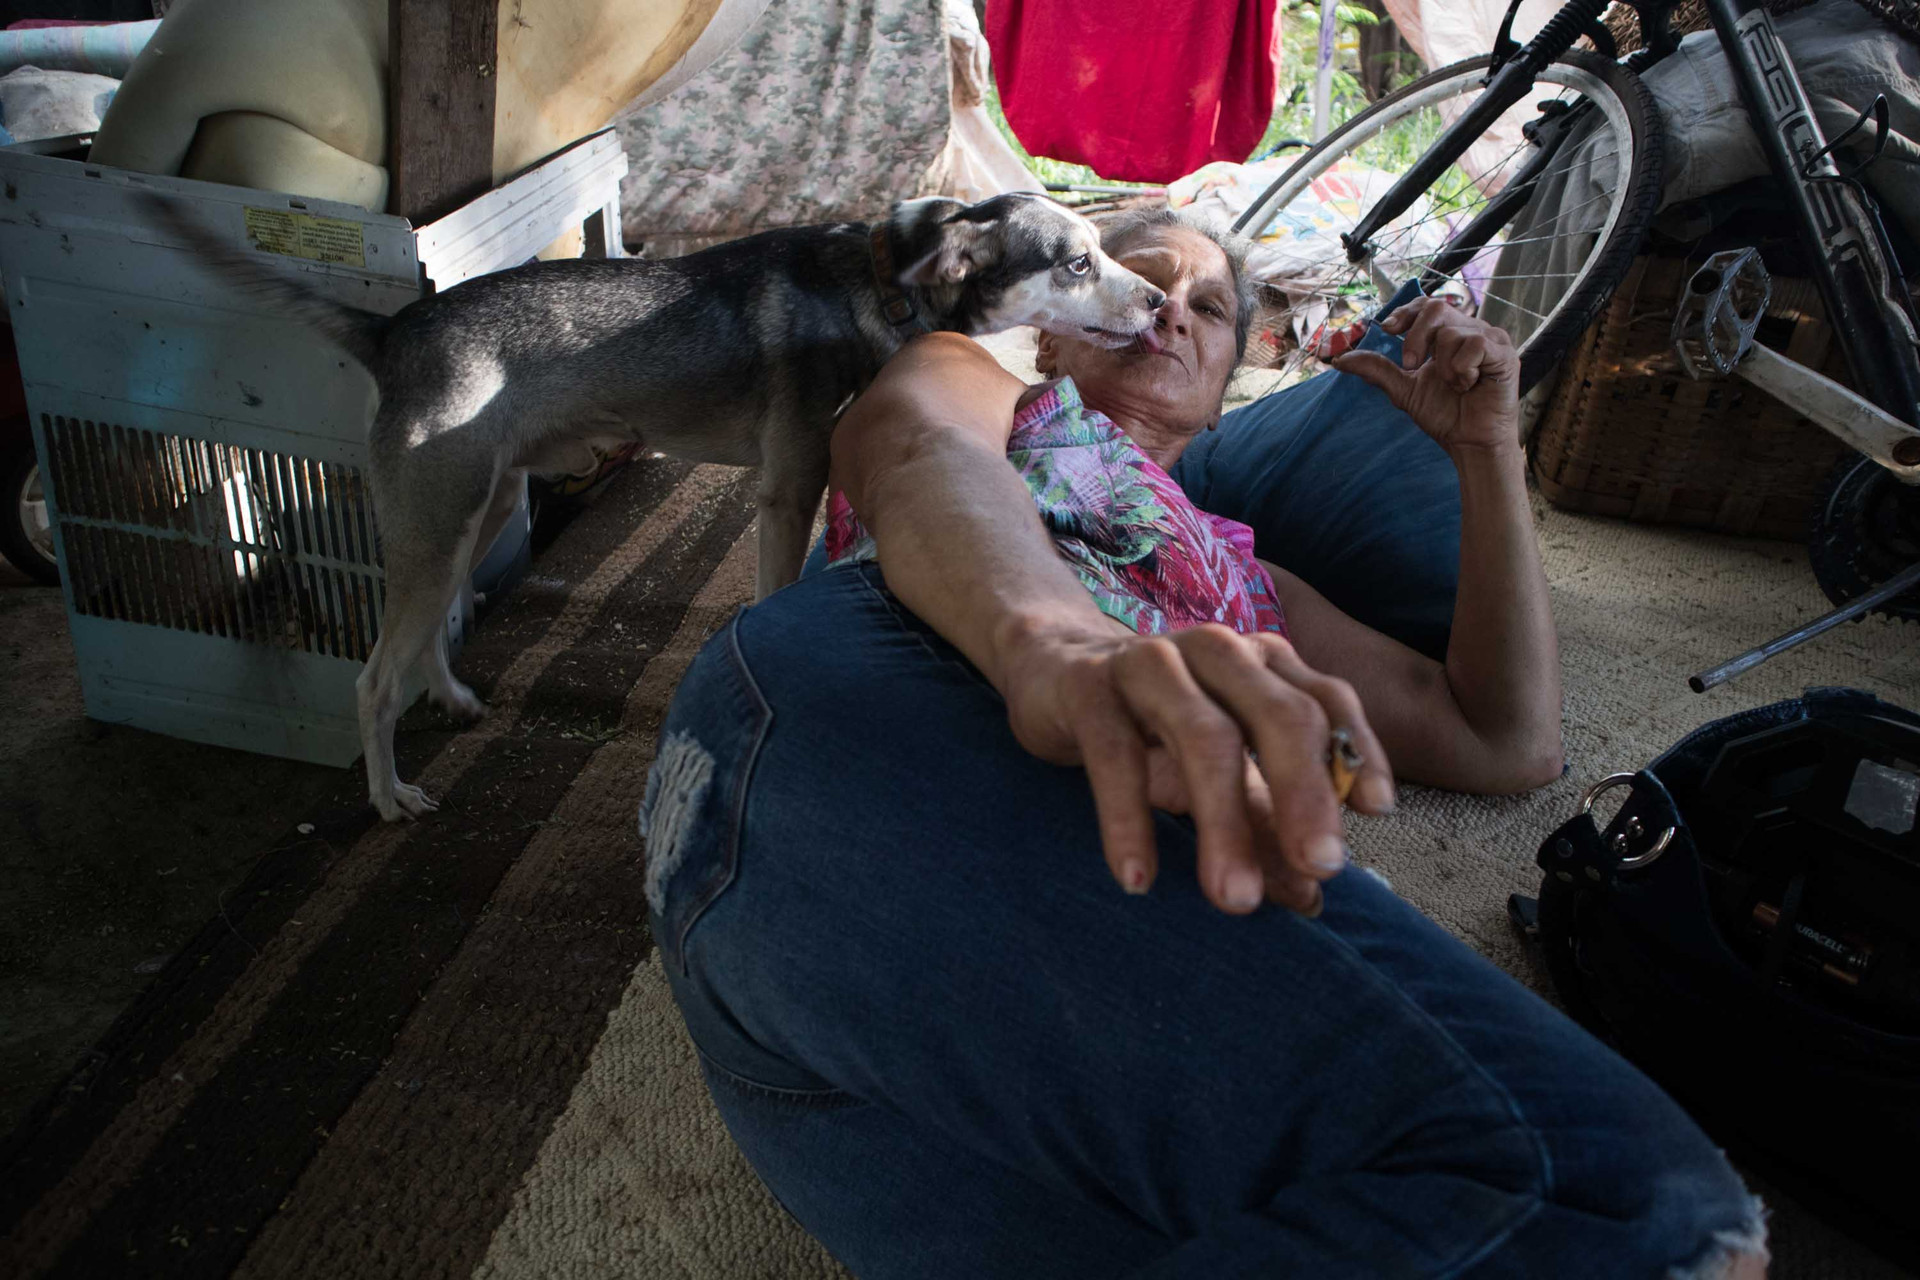 Barbara Meachal plays with her dog inside her house. She has been living in the shelter for the past 5 years.